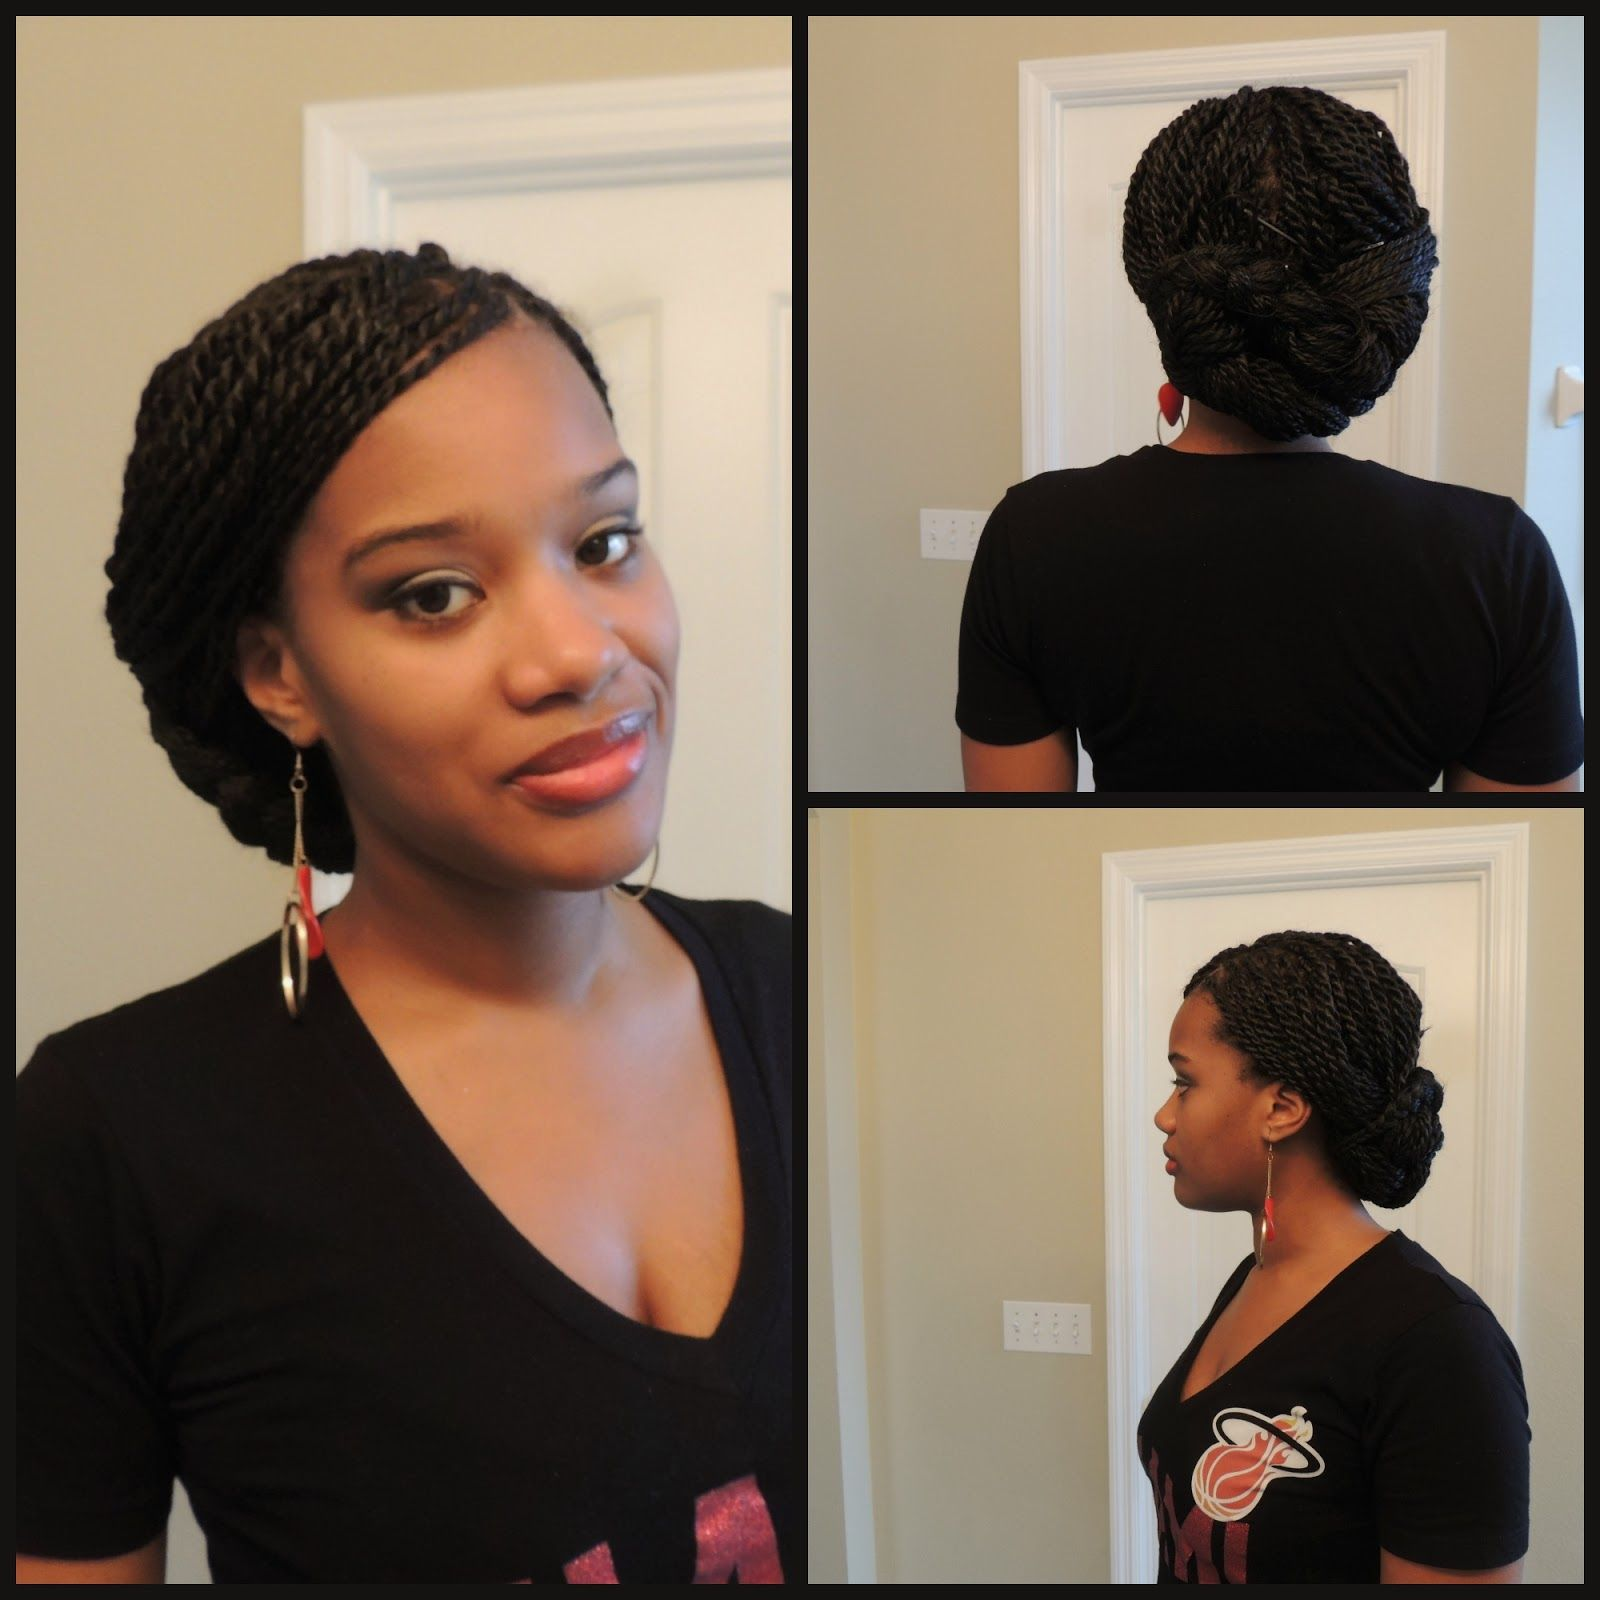 hair styles for bride senegalese twist briaded low bun braids and senegalese 7833 | 3ff7069b99916a833f787229f78c7833